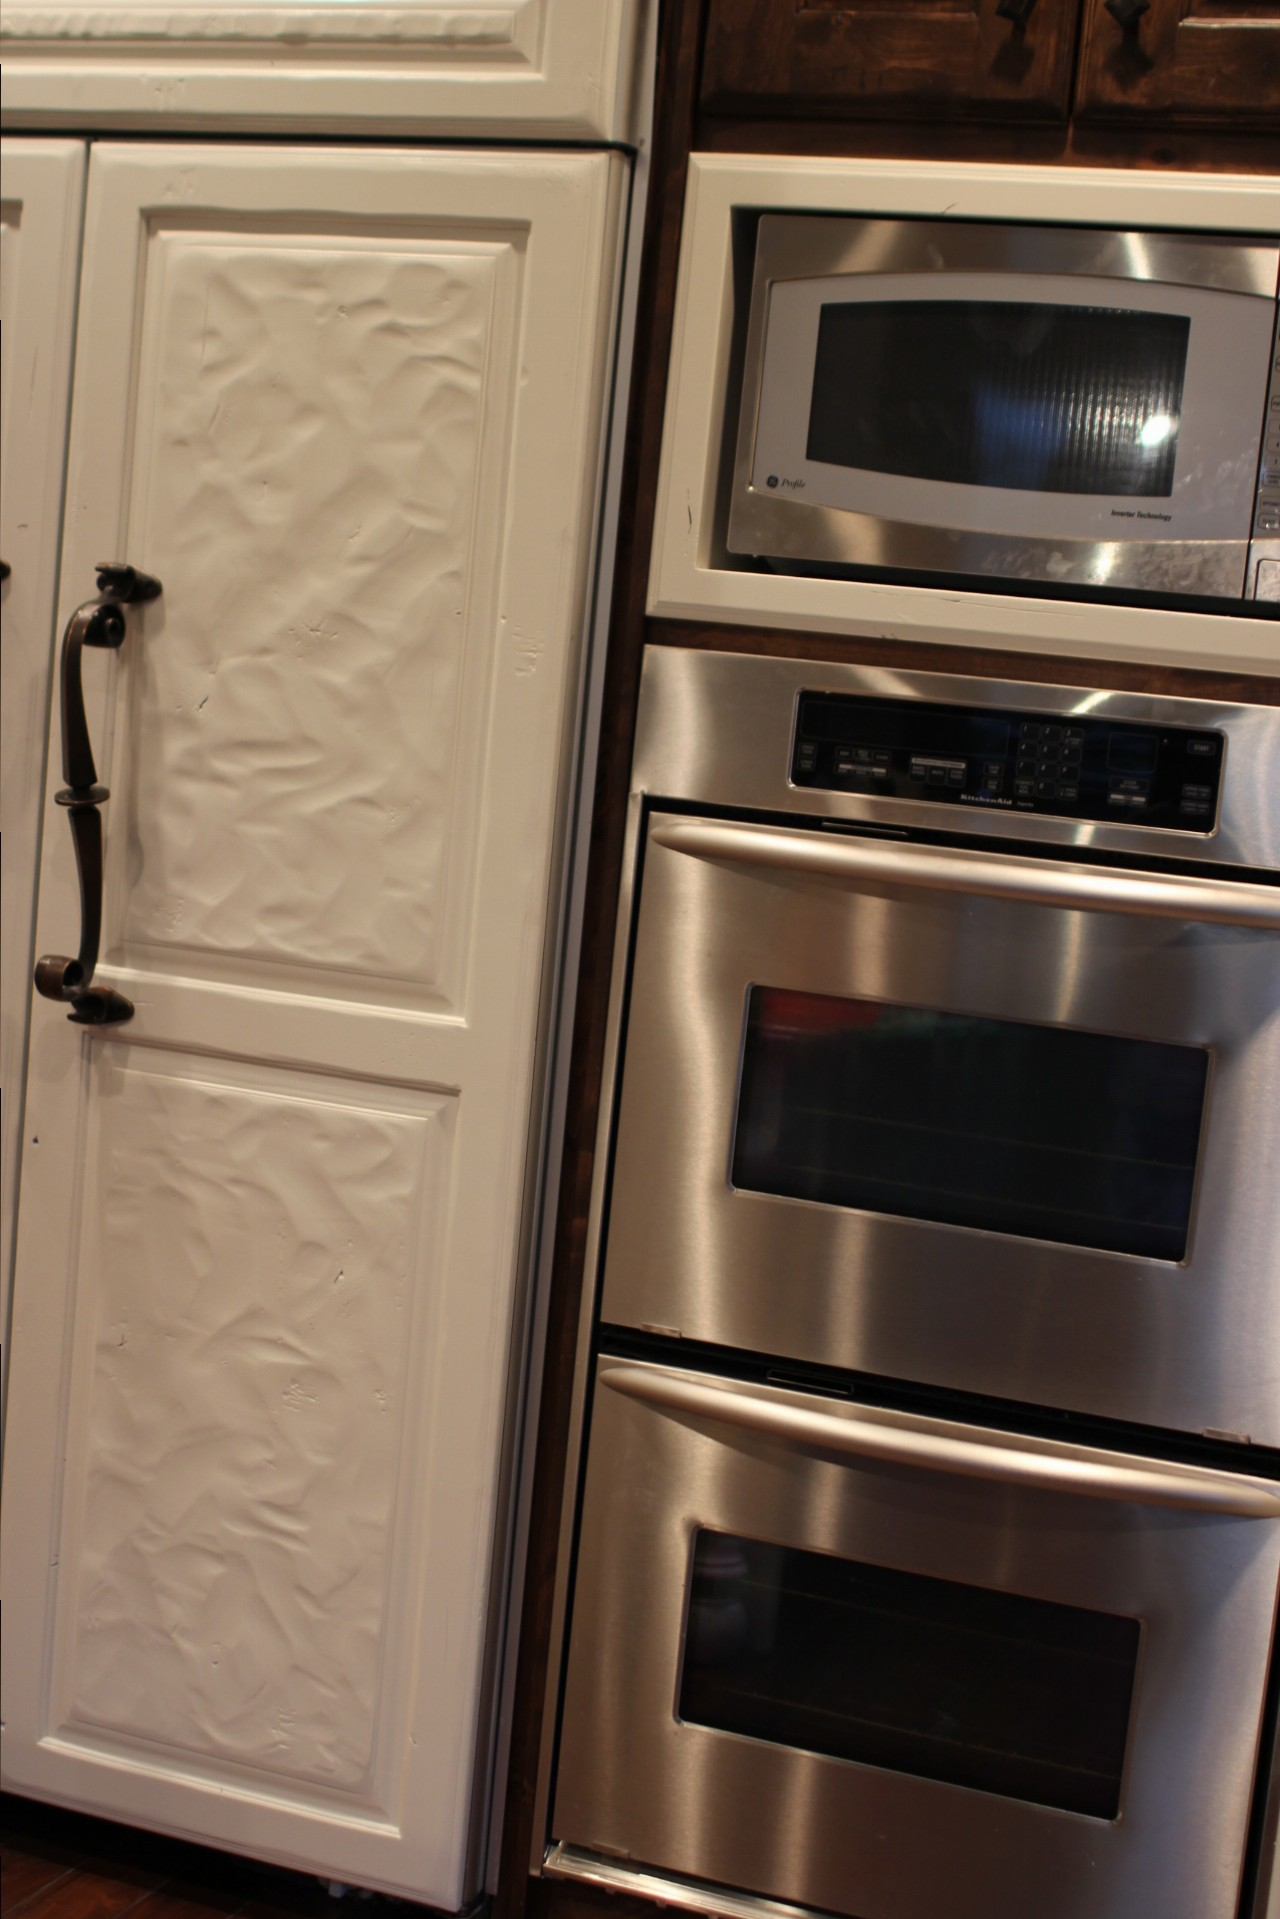 Kitchen Take Over With Ace Hardware. Kitchen Island Ideas B&q. Kitchen Bench Overlay Sydney. Kitchen Chairs Bouclair. Kitchen Lighting Brushed Nickel. Kitchen Paint Ideas For Light Cabinets. Kitchen Pantry Kmart. Kitchen Hardware Winnipeg. Kitchen Mudroom